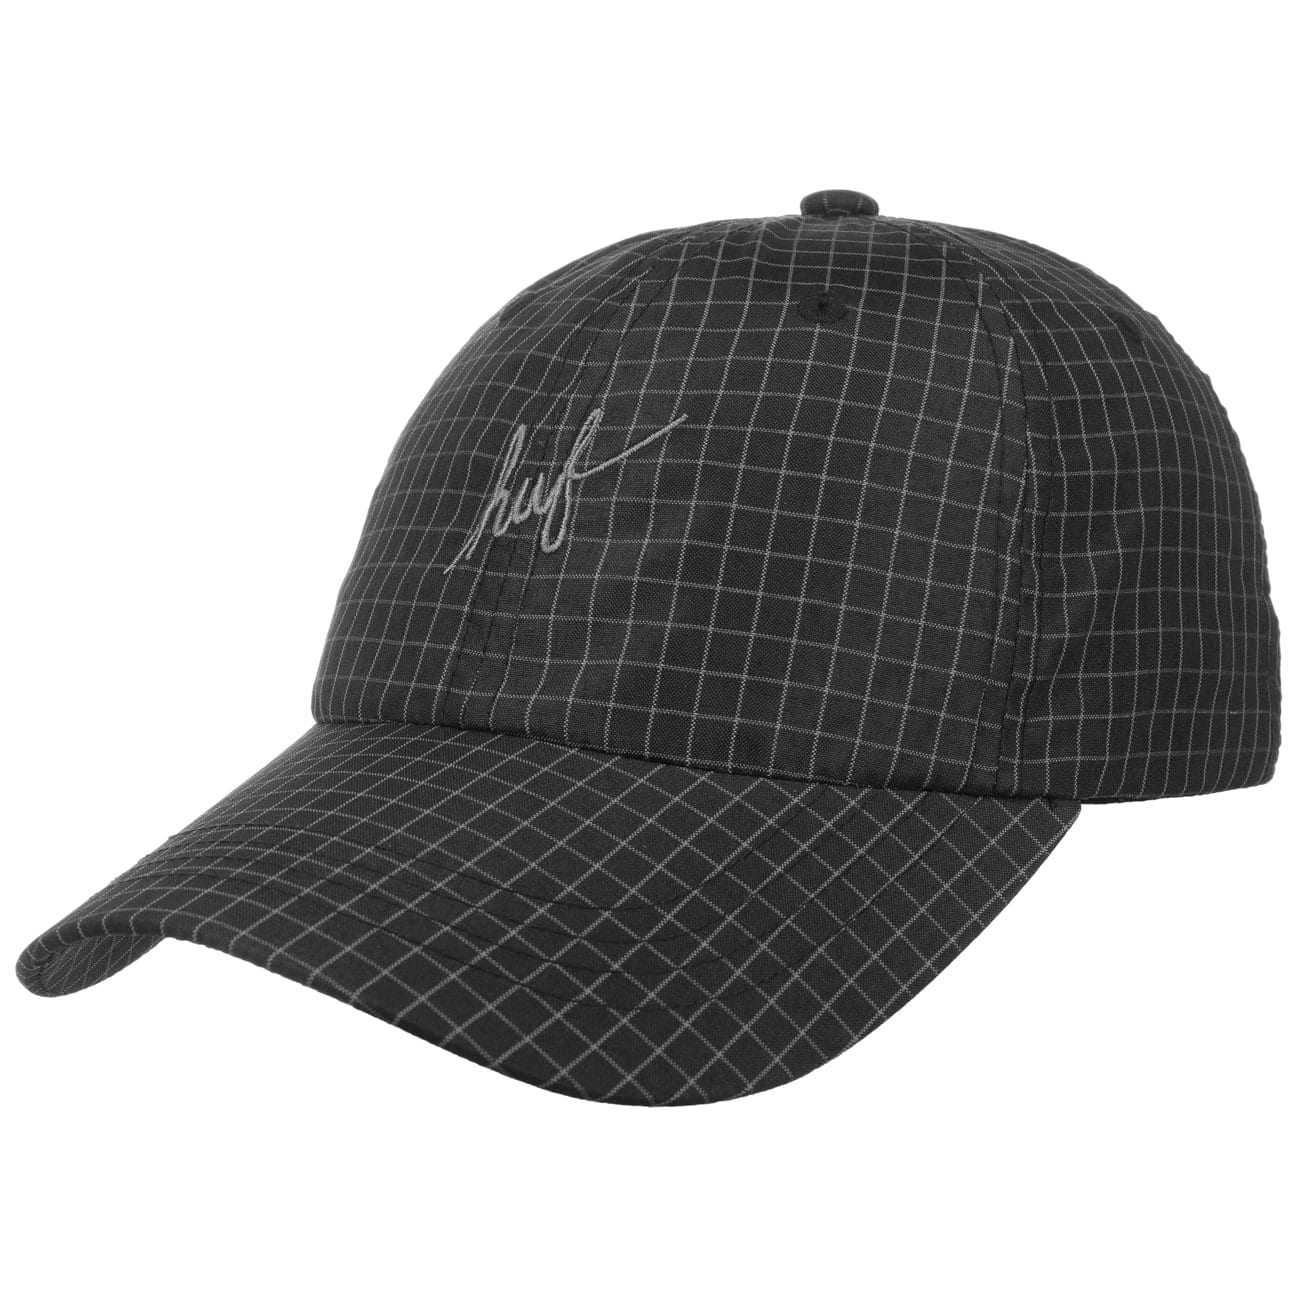 Curved Flynn Casquette Strapback by HUF  baseball cap